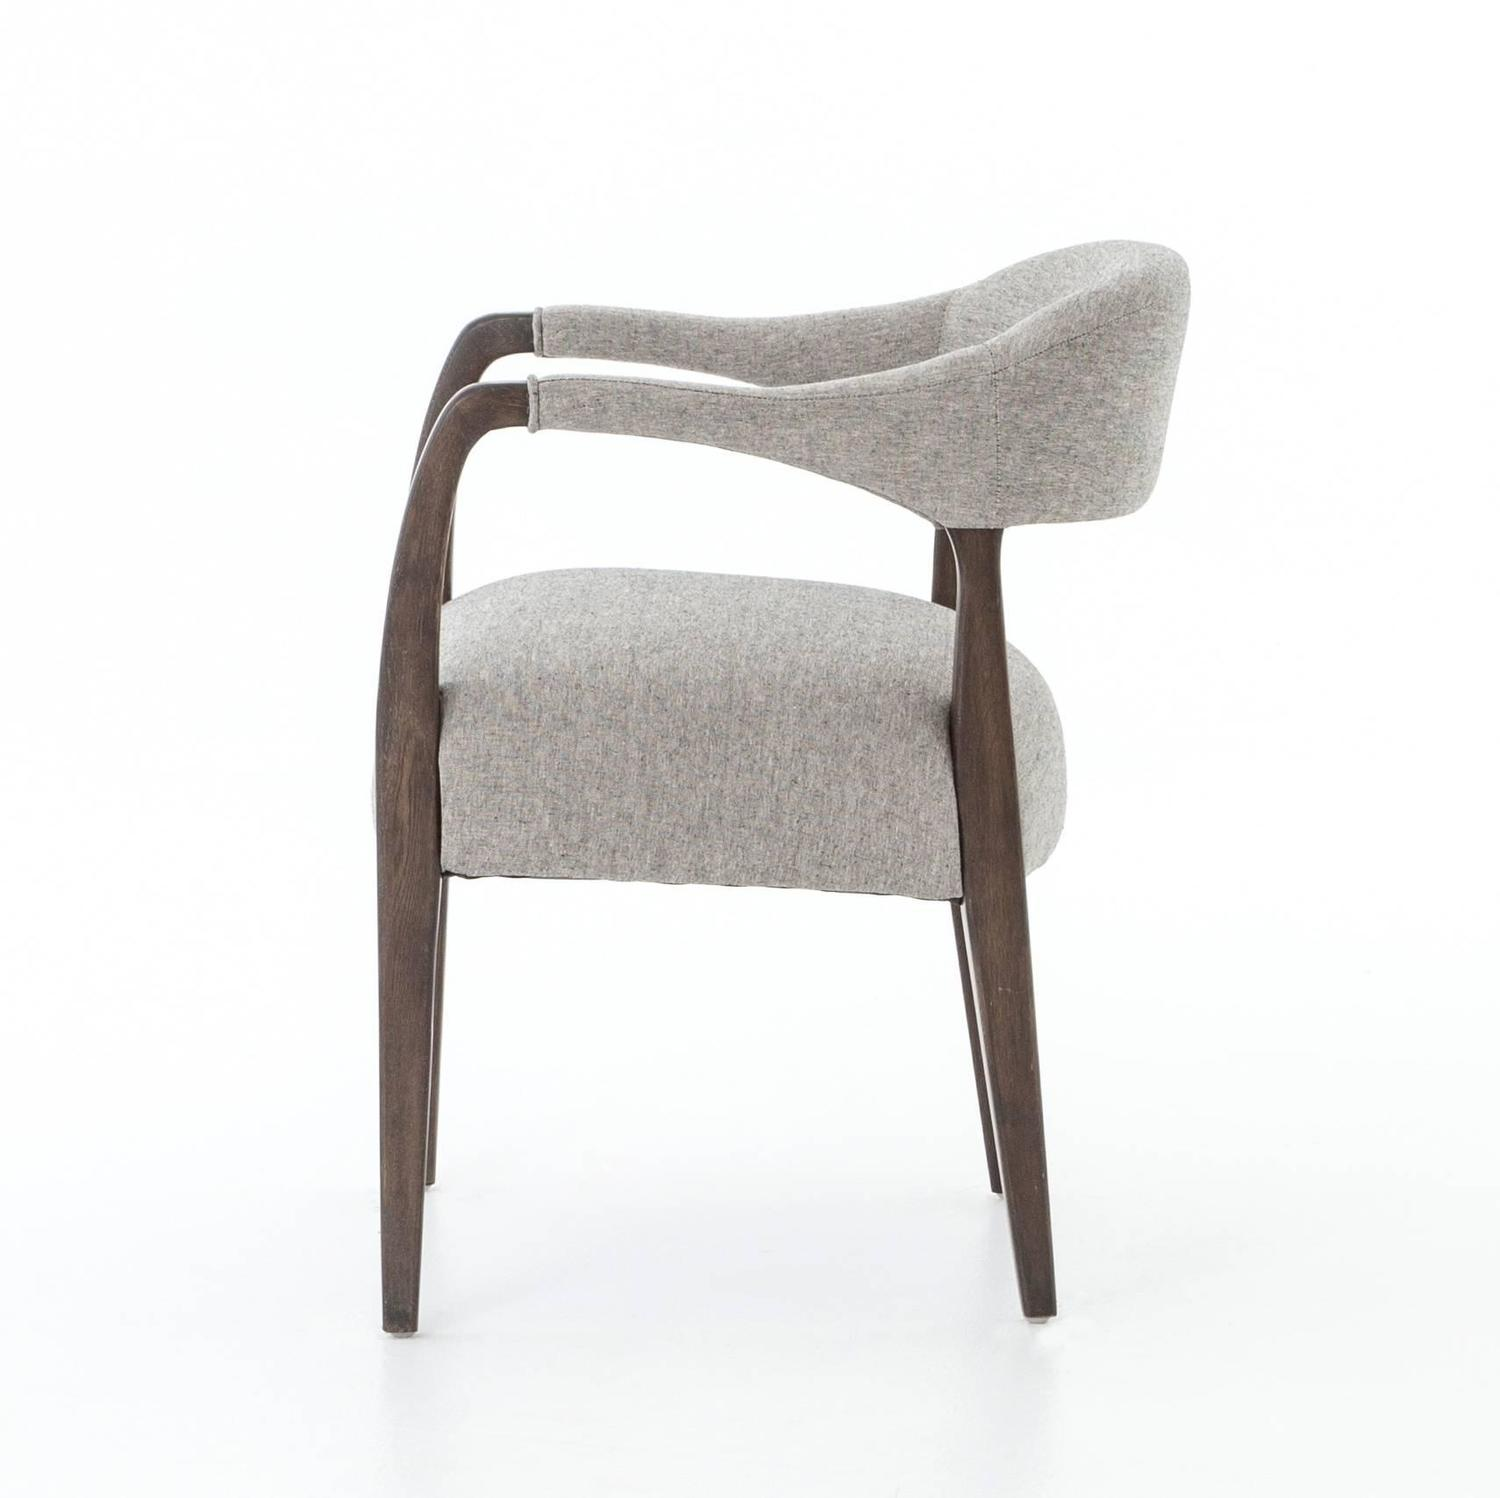 Upholstered Dining Chairs With Arms For Sale At 1stdibs